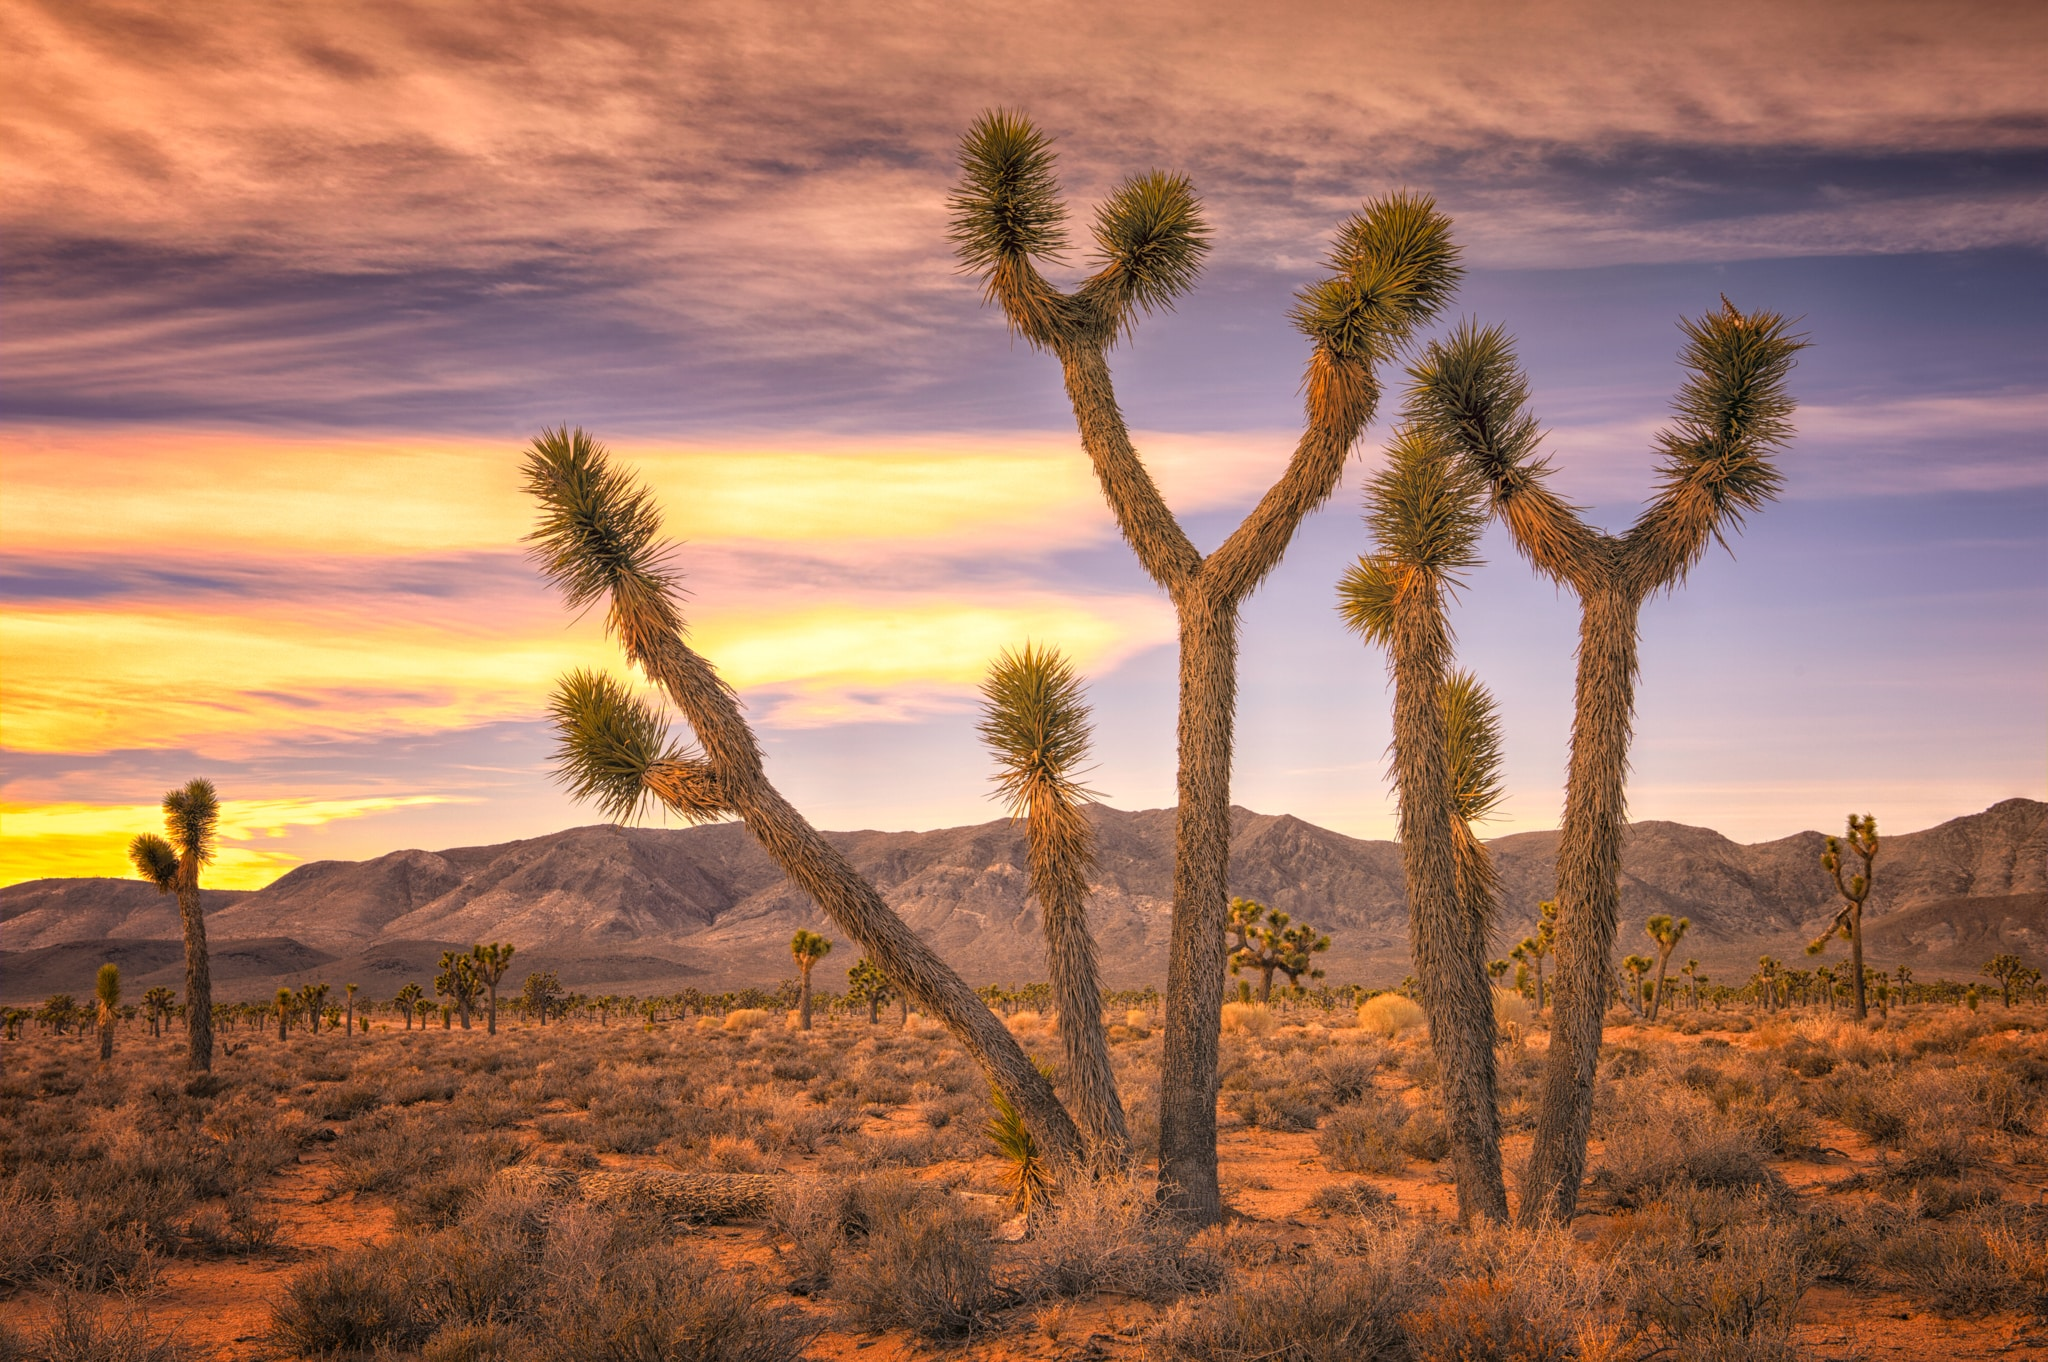 There is a forest of Joshua Trees in the Lee Flat area of Death Valley National Park, which is accessible from the Saline Valley Road off Highway 190 north of Father Crowley Point.